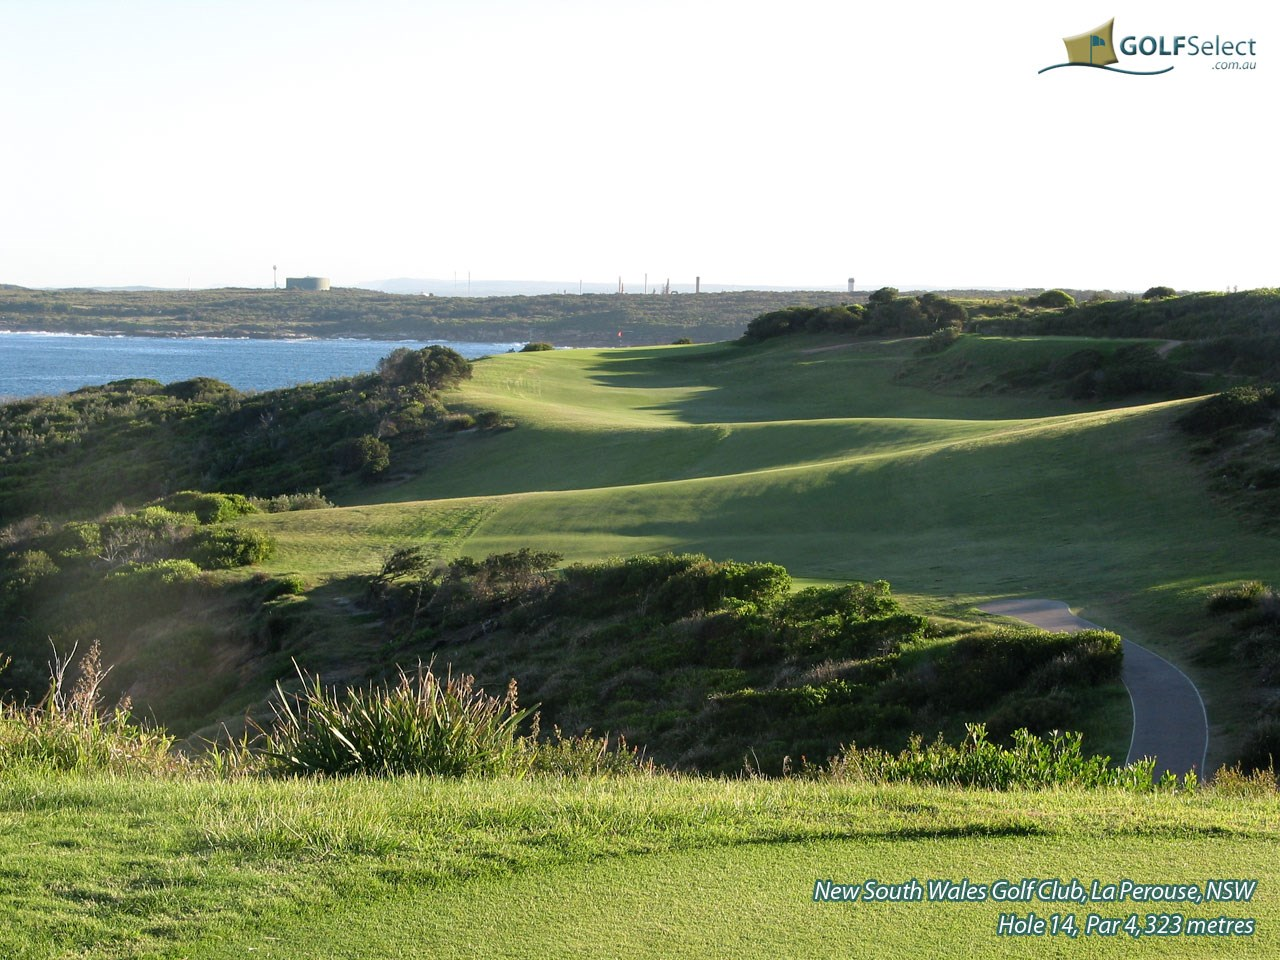 The New South Wales Golf Club Hole 14, Par 4, 323 metres